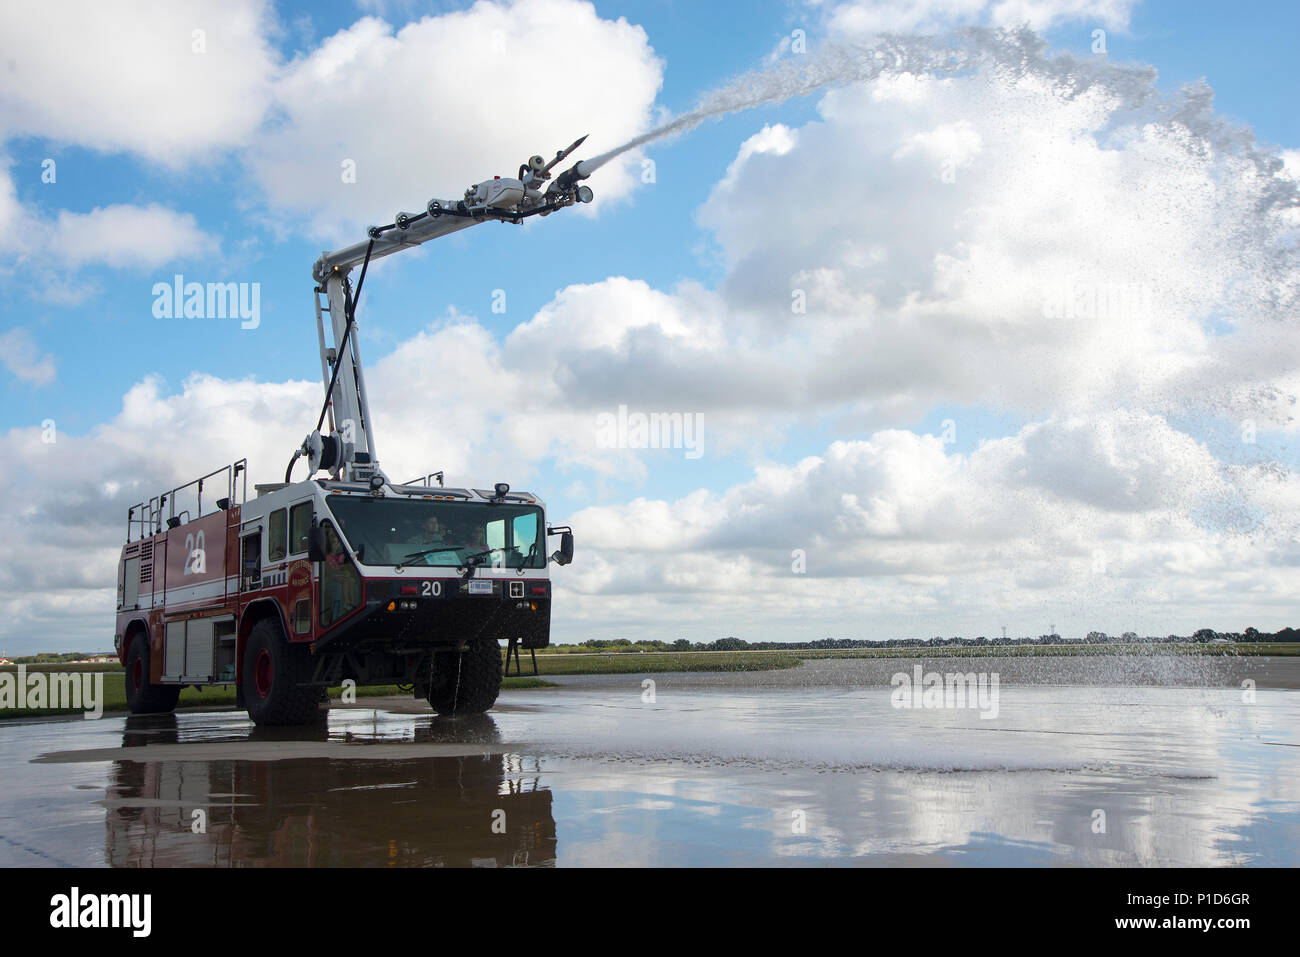 A member of the Joint Base San Antonio-Randolph Fire Department showcases the Oshkosh Striker 3000 to visitors during the JBSA Fire Prevention Week open house at JBSA-Randolph Oct. 15, 2016. The Oshkosh Striker 3000 is an Aircraft Rescue and Firefighting vehicle that can expend thousands of gallons of foam to extinguish jet fuel fires. Stock Photo